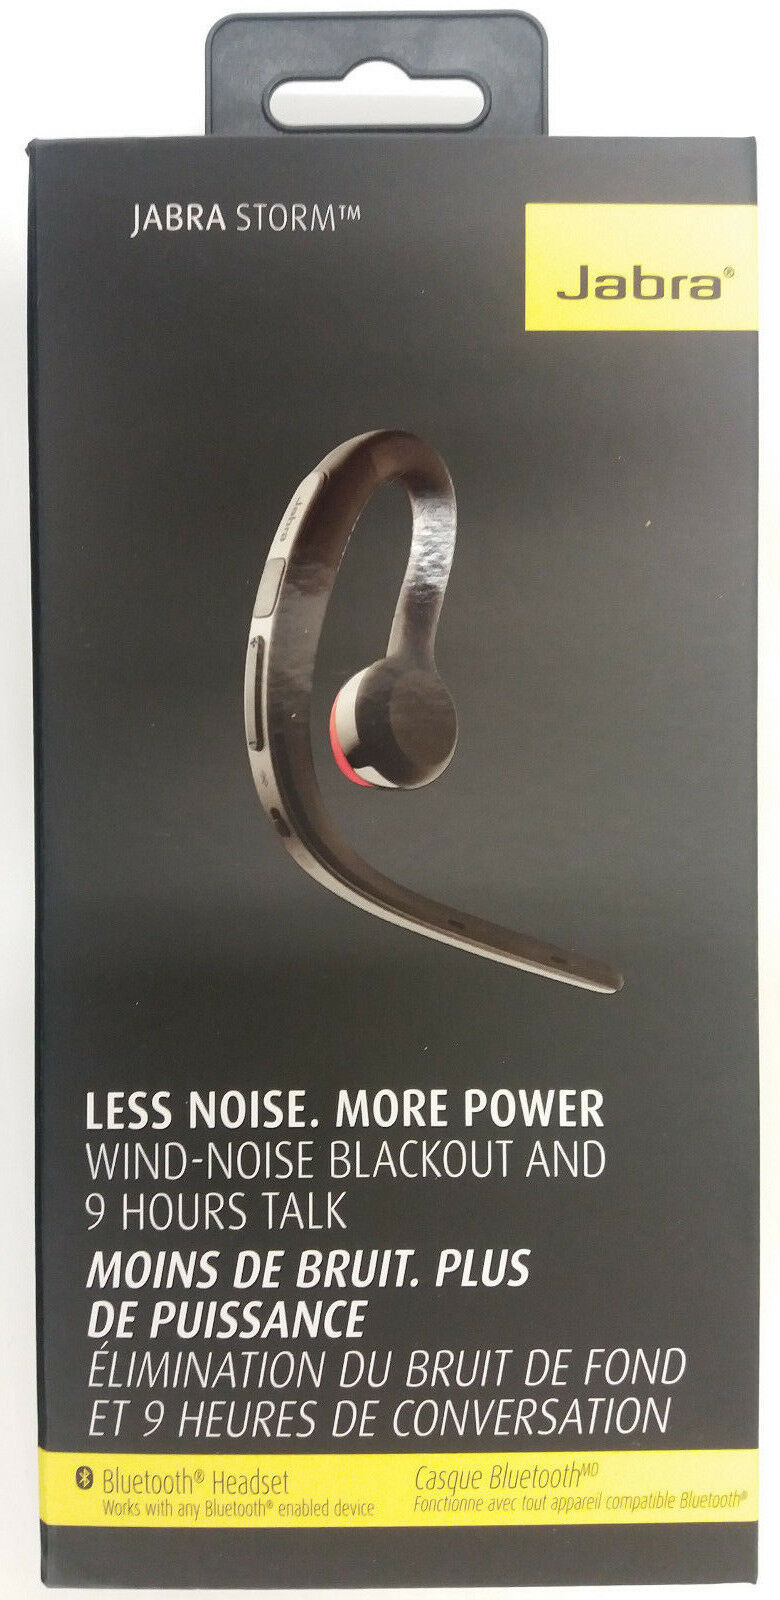 Jabra Storm In Ear Noise Cancelling Bluetooth Headset For Sale Online Ebay